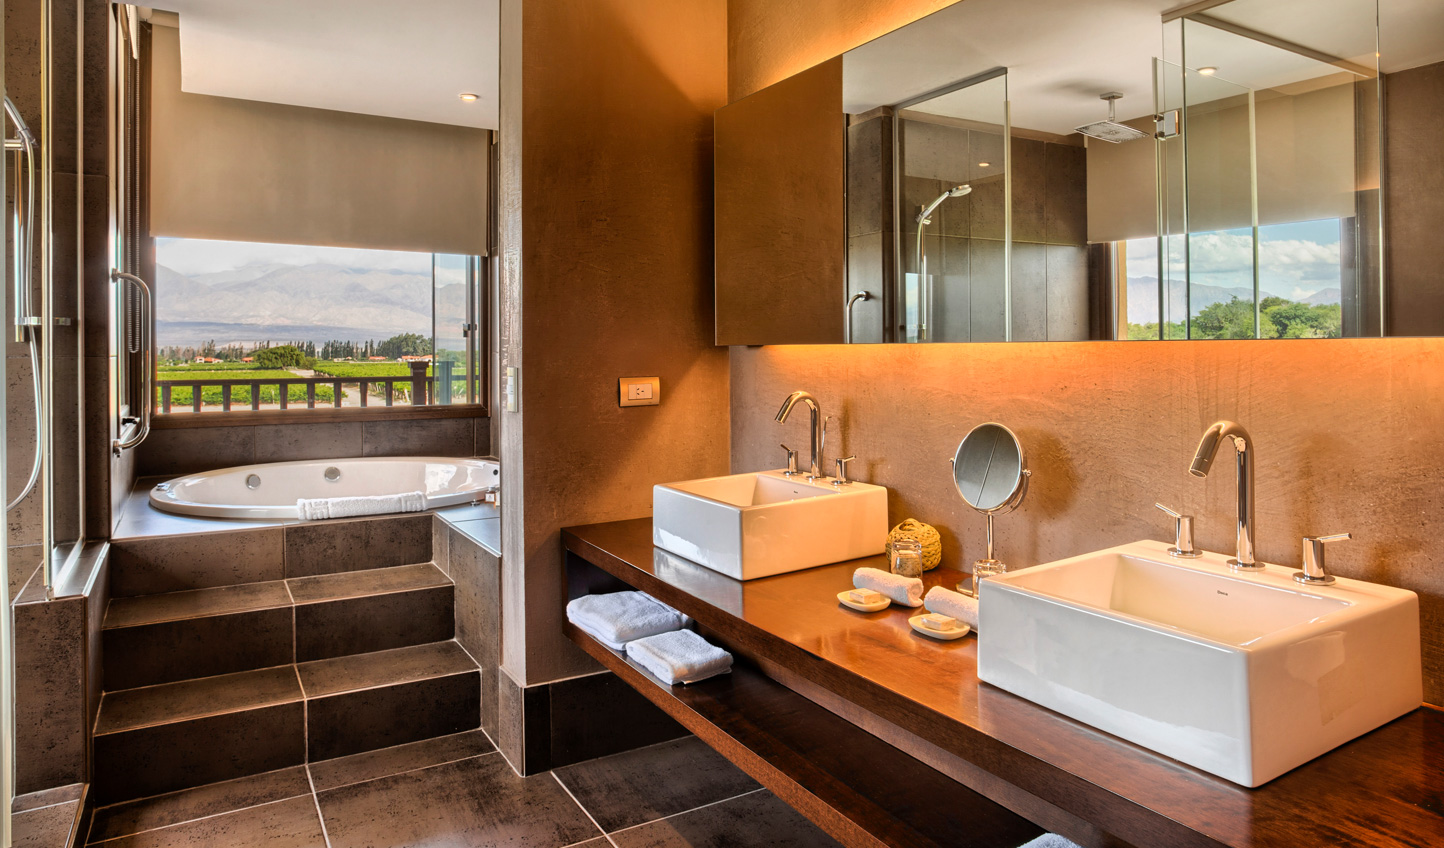 Grace Cafayates spacious rooms each feature luxe bathrooms